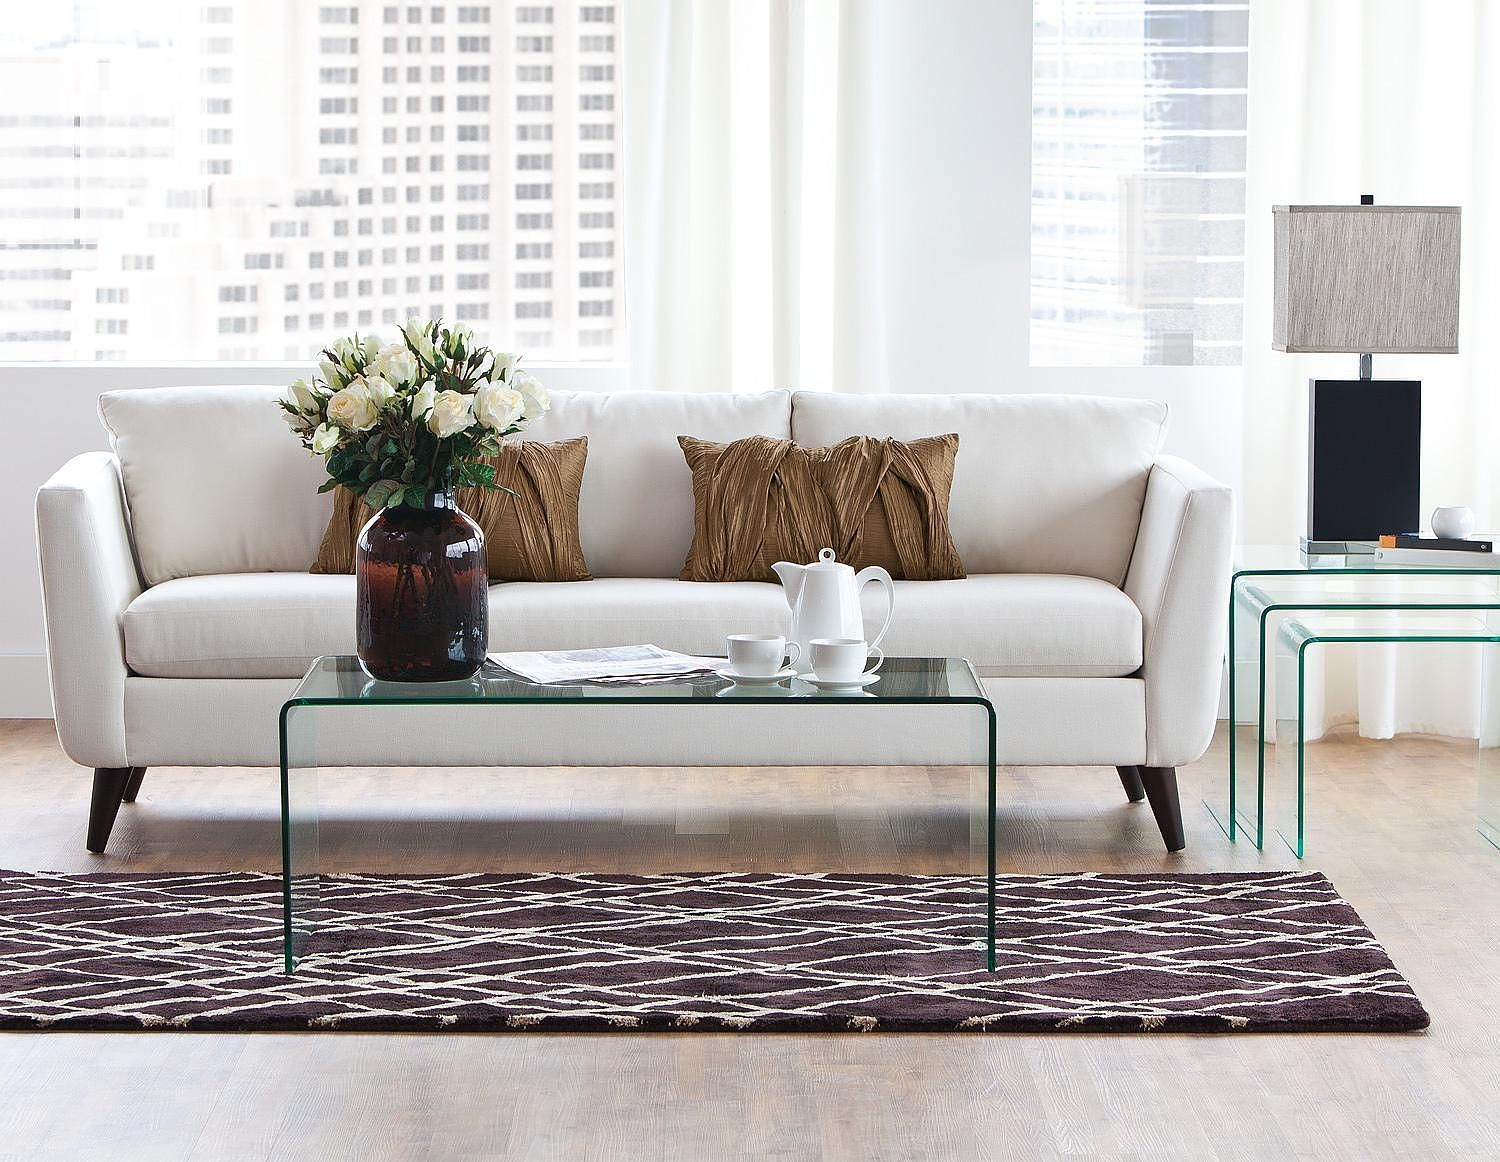 Living Room Coffee Table Glass Find the best images of ...